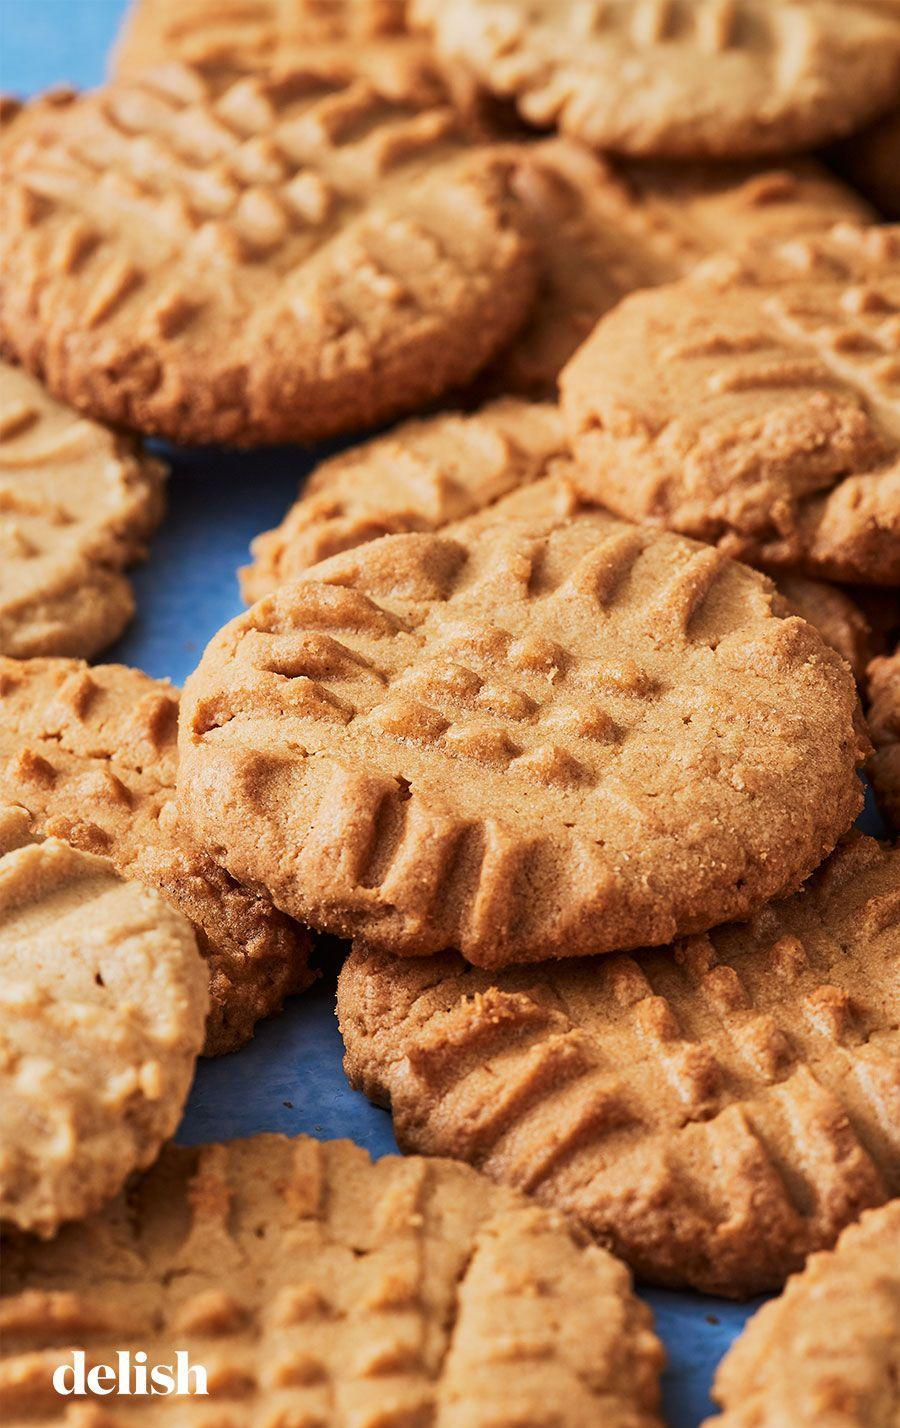 """<p>They're good literally every time you make them. </p><p>Get the recipe from <a href=""""https://www.delish.com/cooking/recipe-ideas/recipes/a51462/easy-peanut-butter-cookie-recipe/"""" rel=""""nofollow noopener"""" target=""""_blank"""" data-ylk=""""slk:Delish"""" class=""""link rapid-noclick-resp"""">Delish</a>.</p>"""